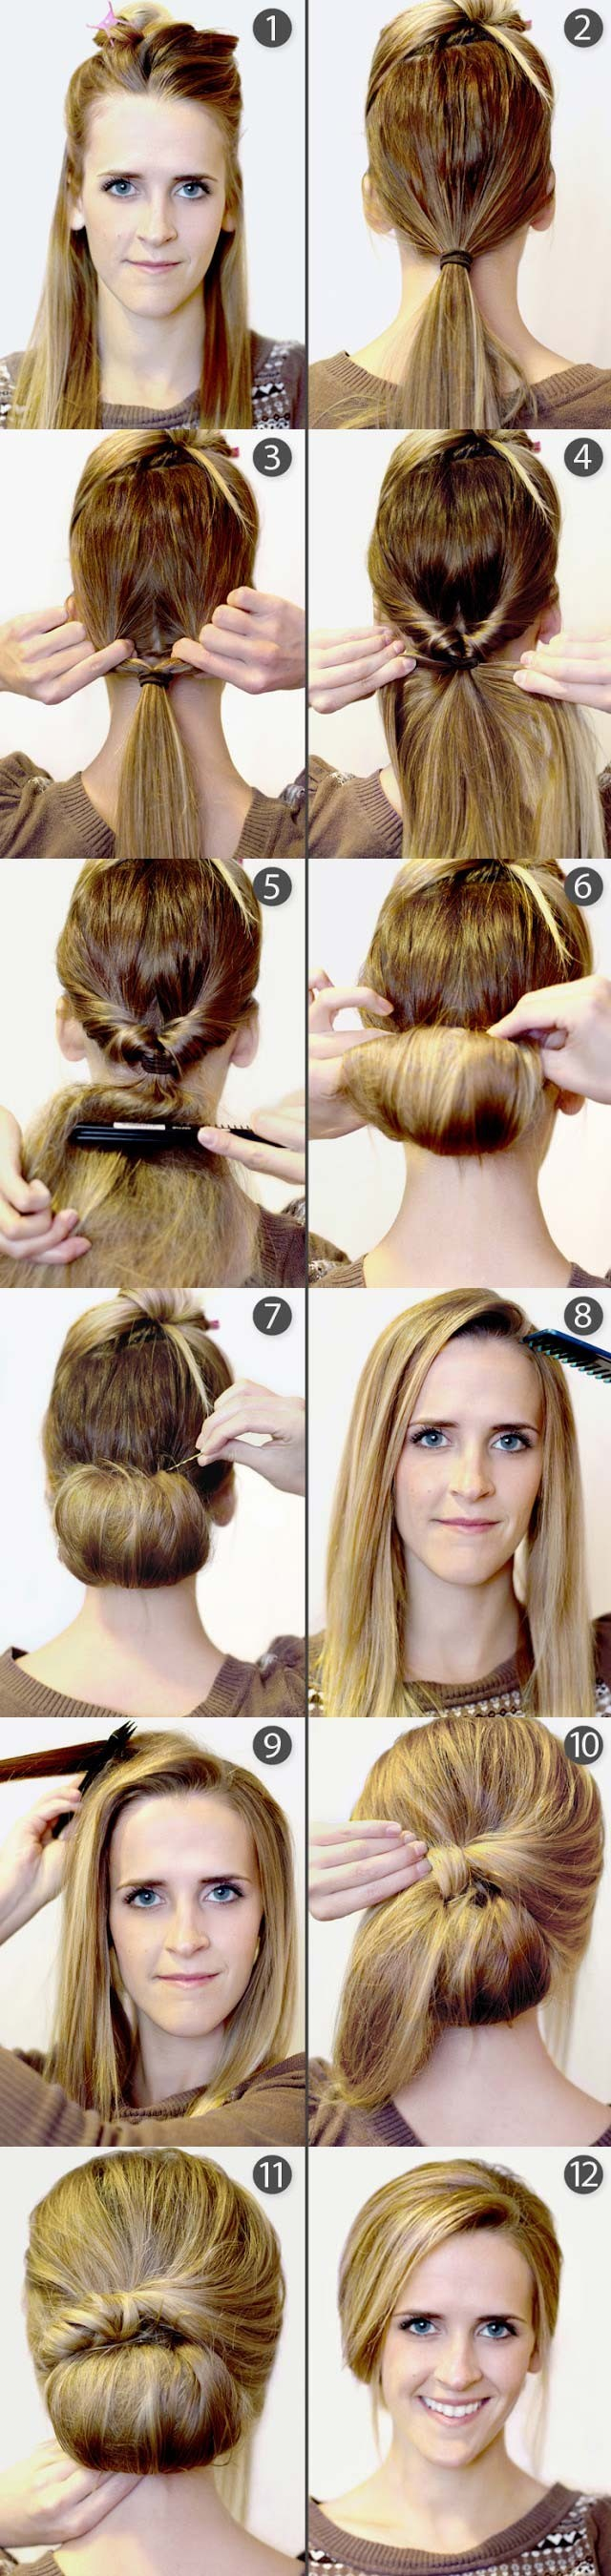 Magnificent 15 Cute Hairstyles Step By Step Hairstyles For Long Hair Hairstyle Inspiration Daily Dogsangcom